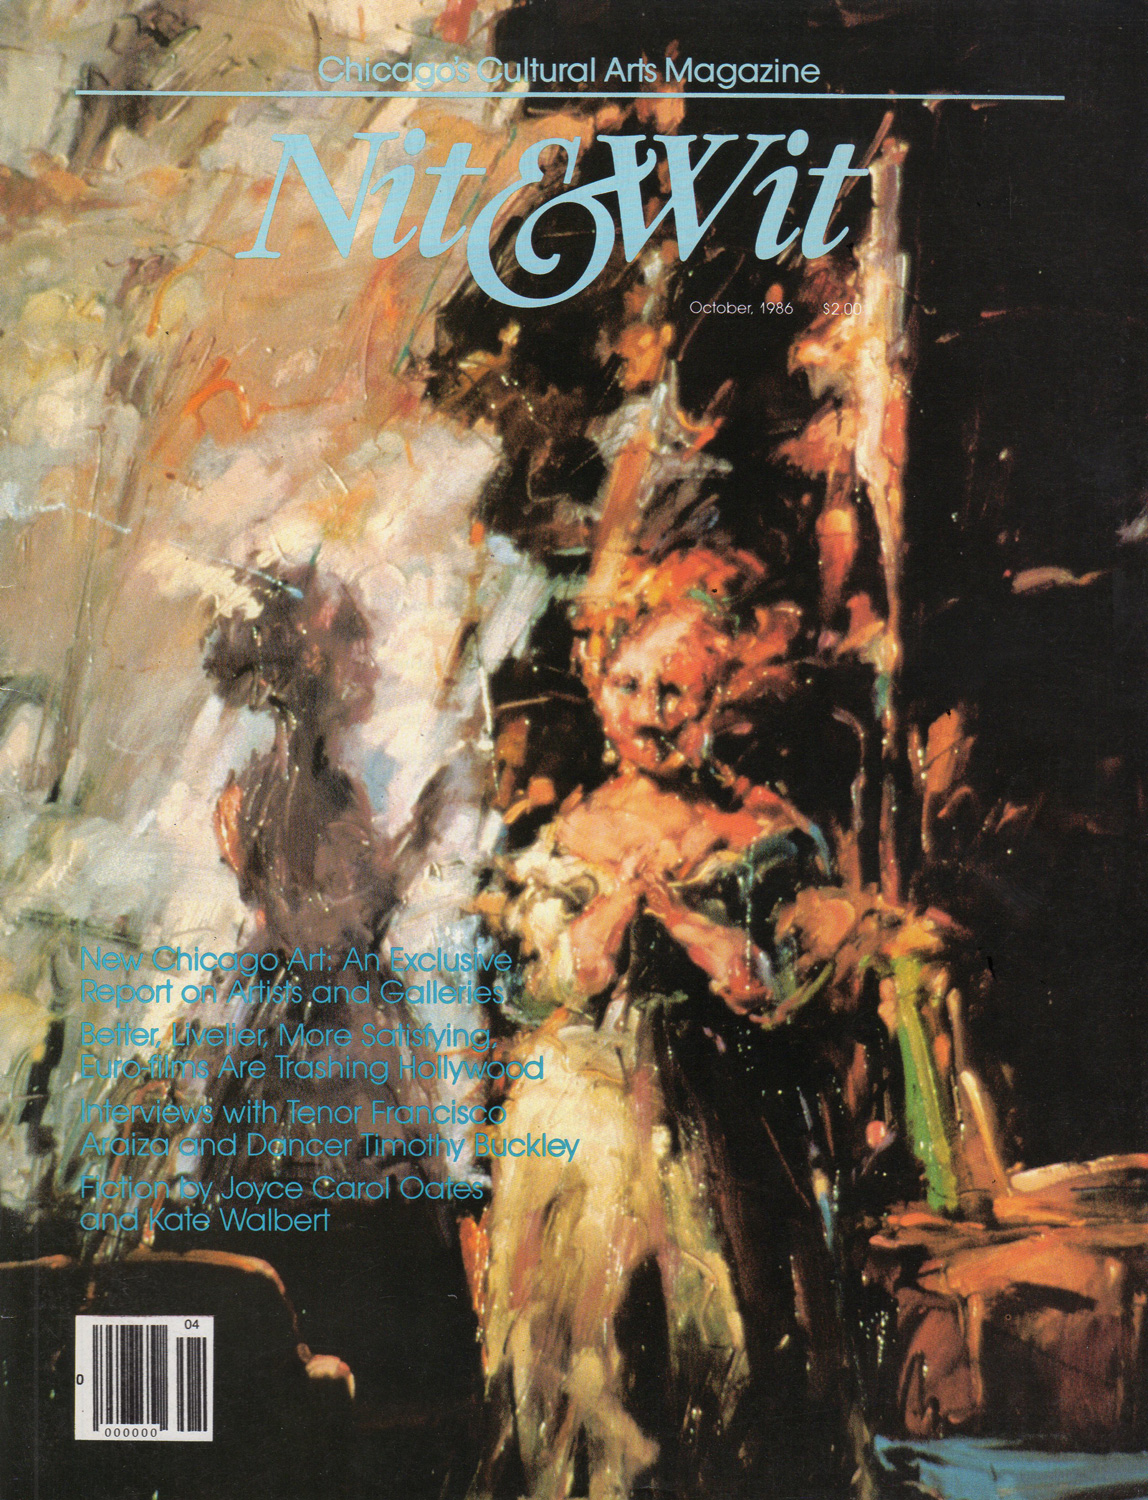 Nit & Wit Magazine  - Volume 7 Number 4, Geneva, IL, October 1986.